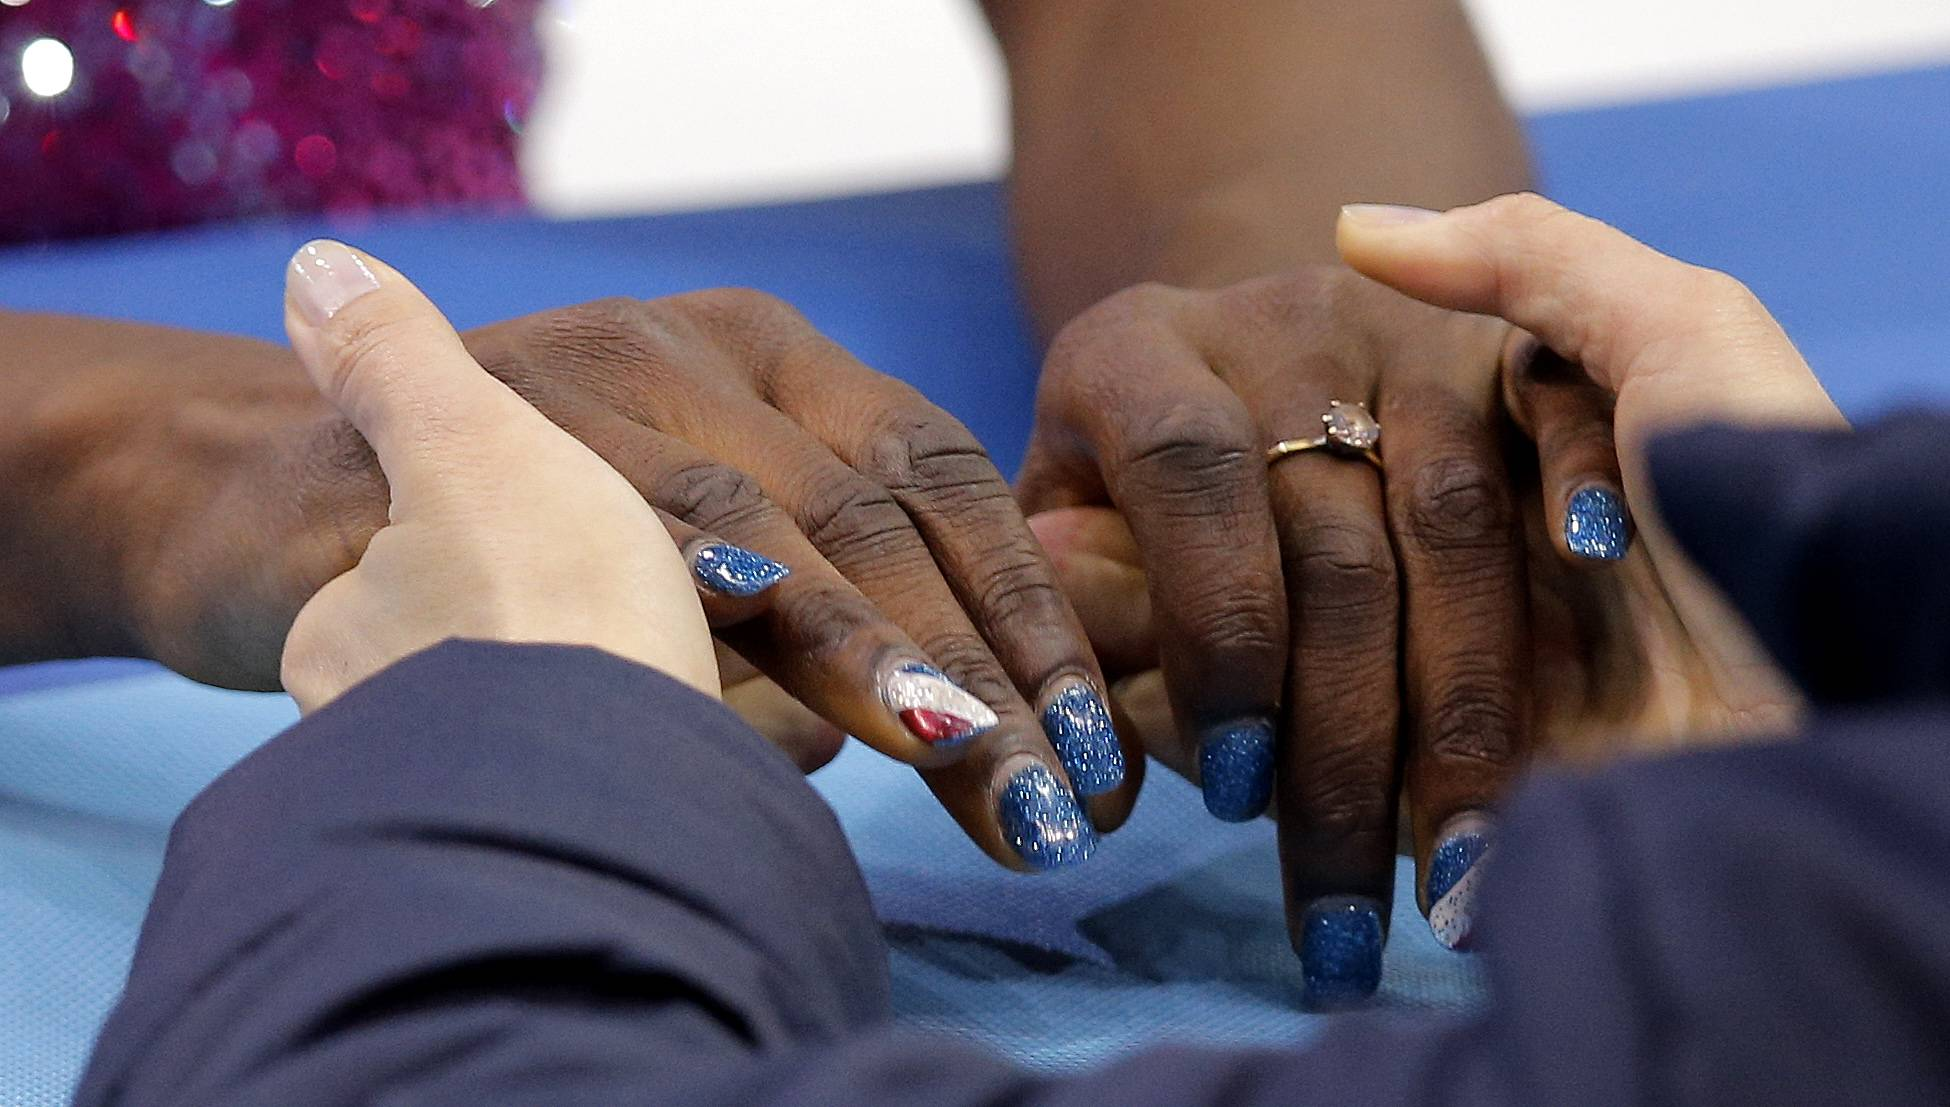 The hands of Mae Berenice Meite of France are seen as she talks to her coach before competing in the women's short program figure skating competition.